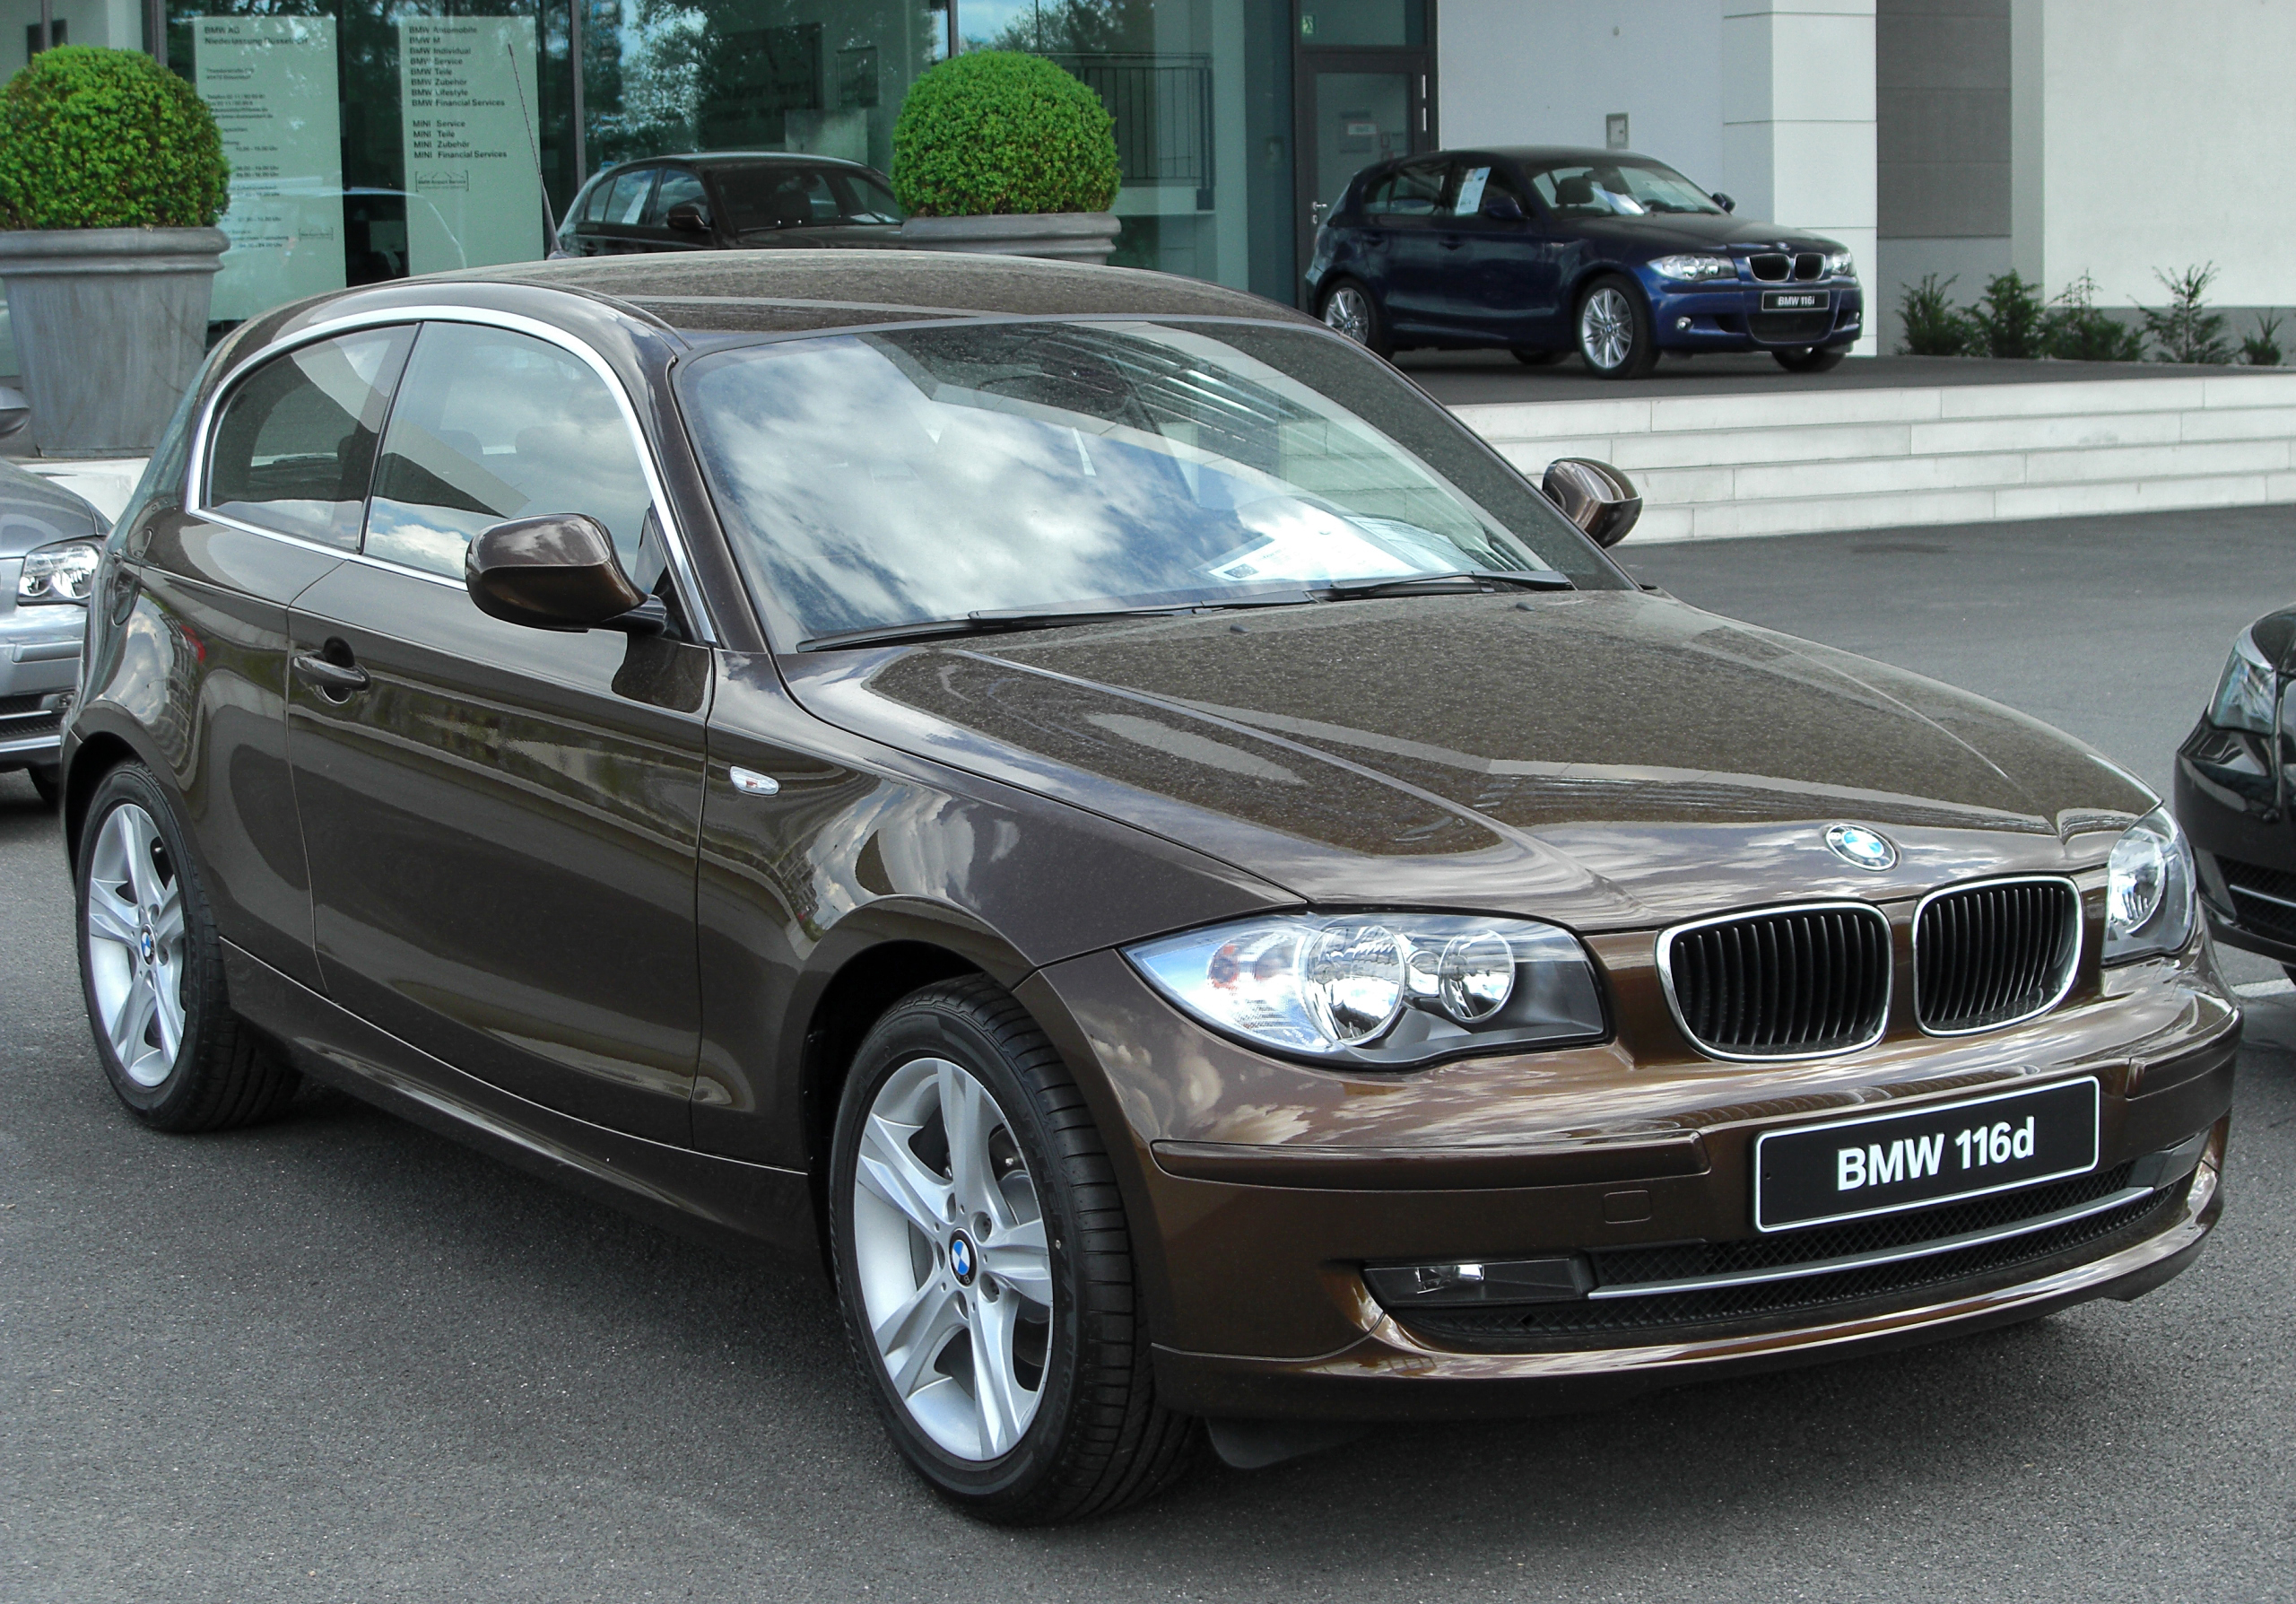 file bmw 116d e81 facelift front wikimedia commons. Black Bedroom Furniture Sets. Home Design Ideas